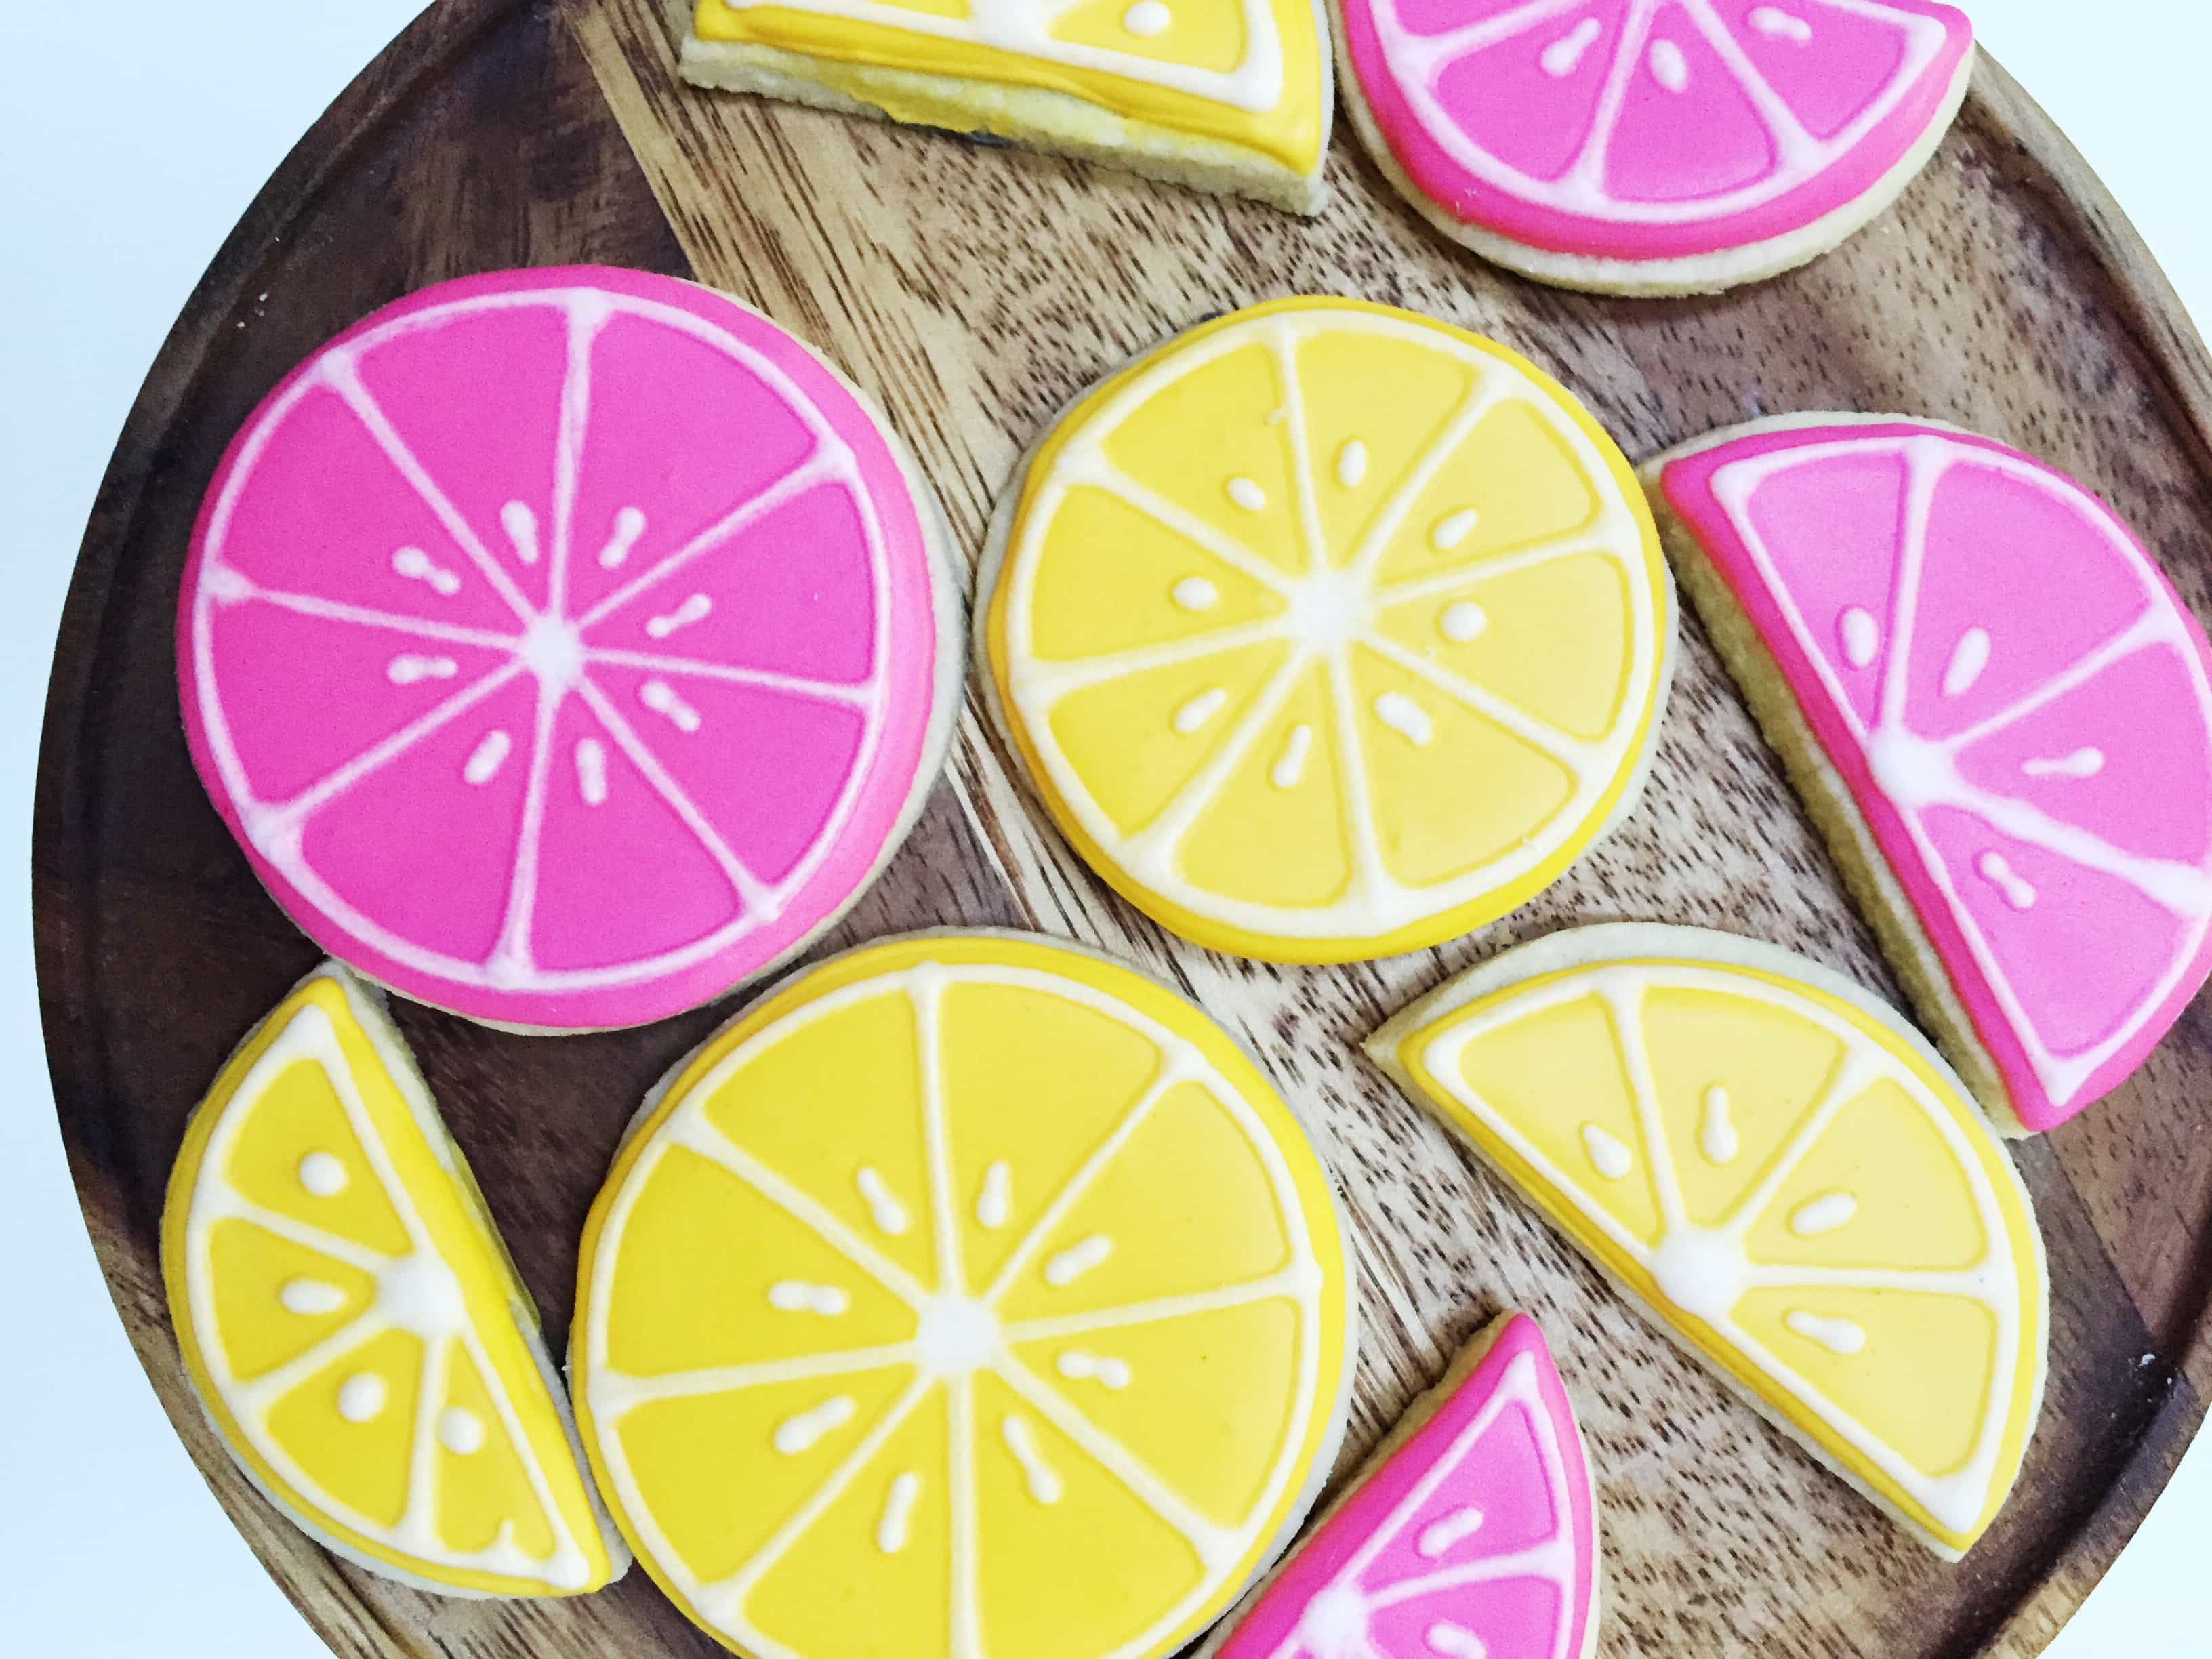 Then You Must Try This Amazing Sugar Cookie Recipe I Wanted To Incorporate My Two Favorite Colors In The Set Pink And Yellow While Creating A